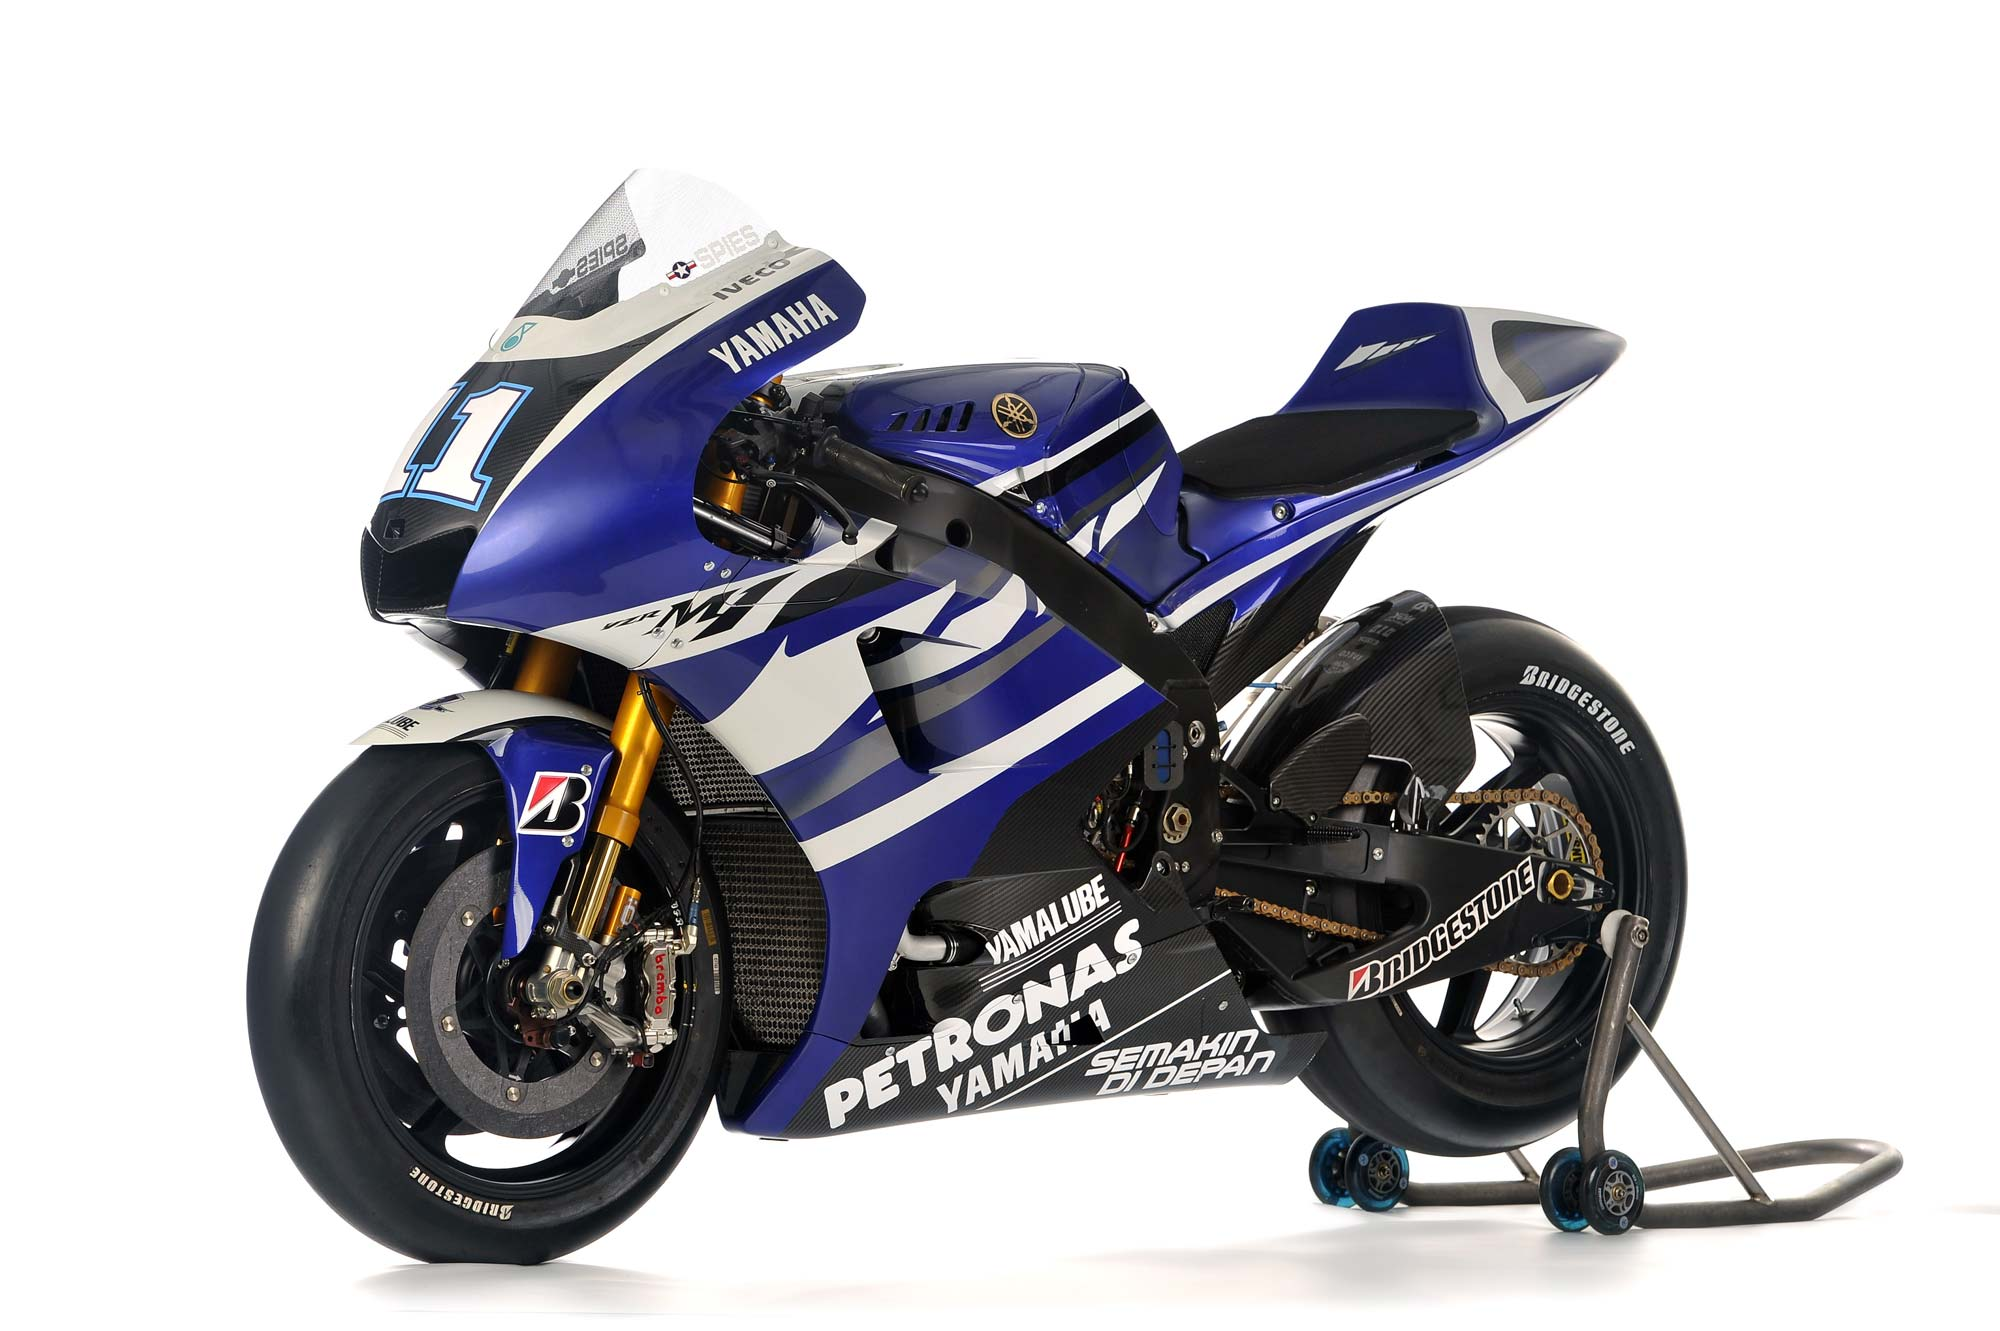 yamaha racing bike Yamaha MotoGP 2011Yamaha Racing Bike